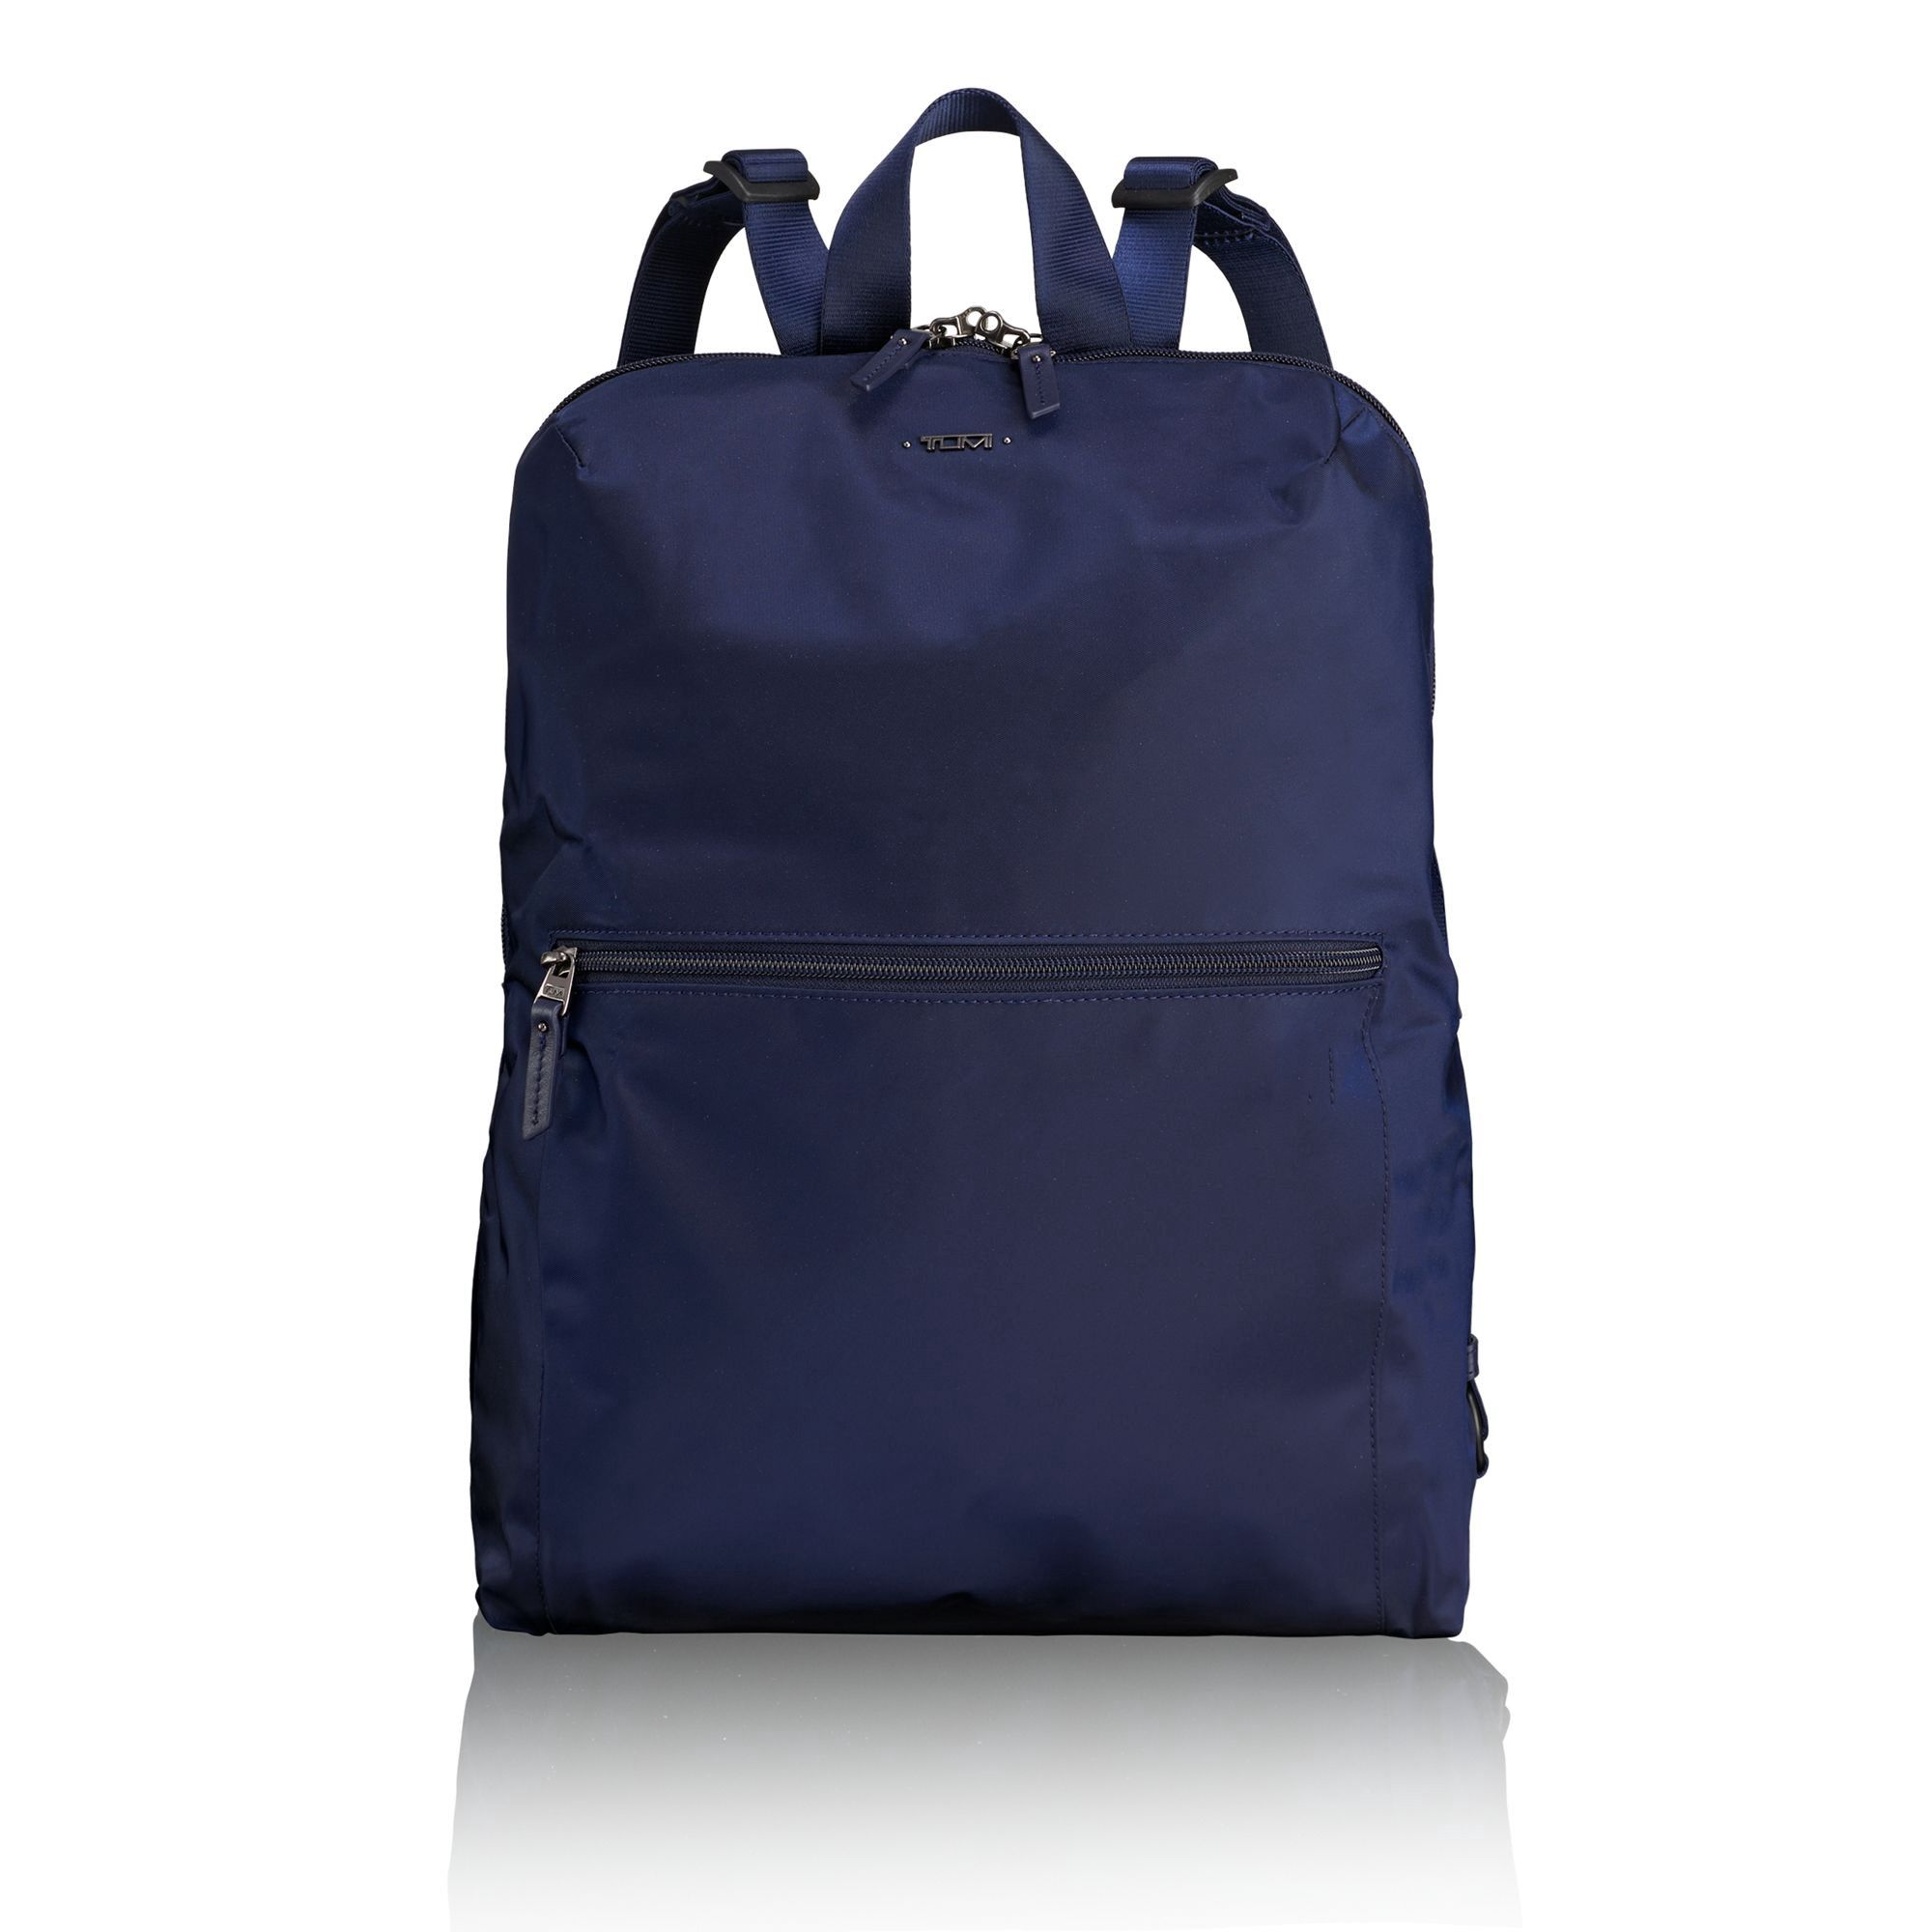 Tumi Just In Case Backpack Marine Bags Nylon Backpacks